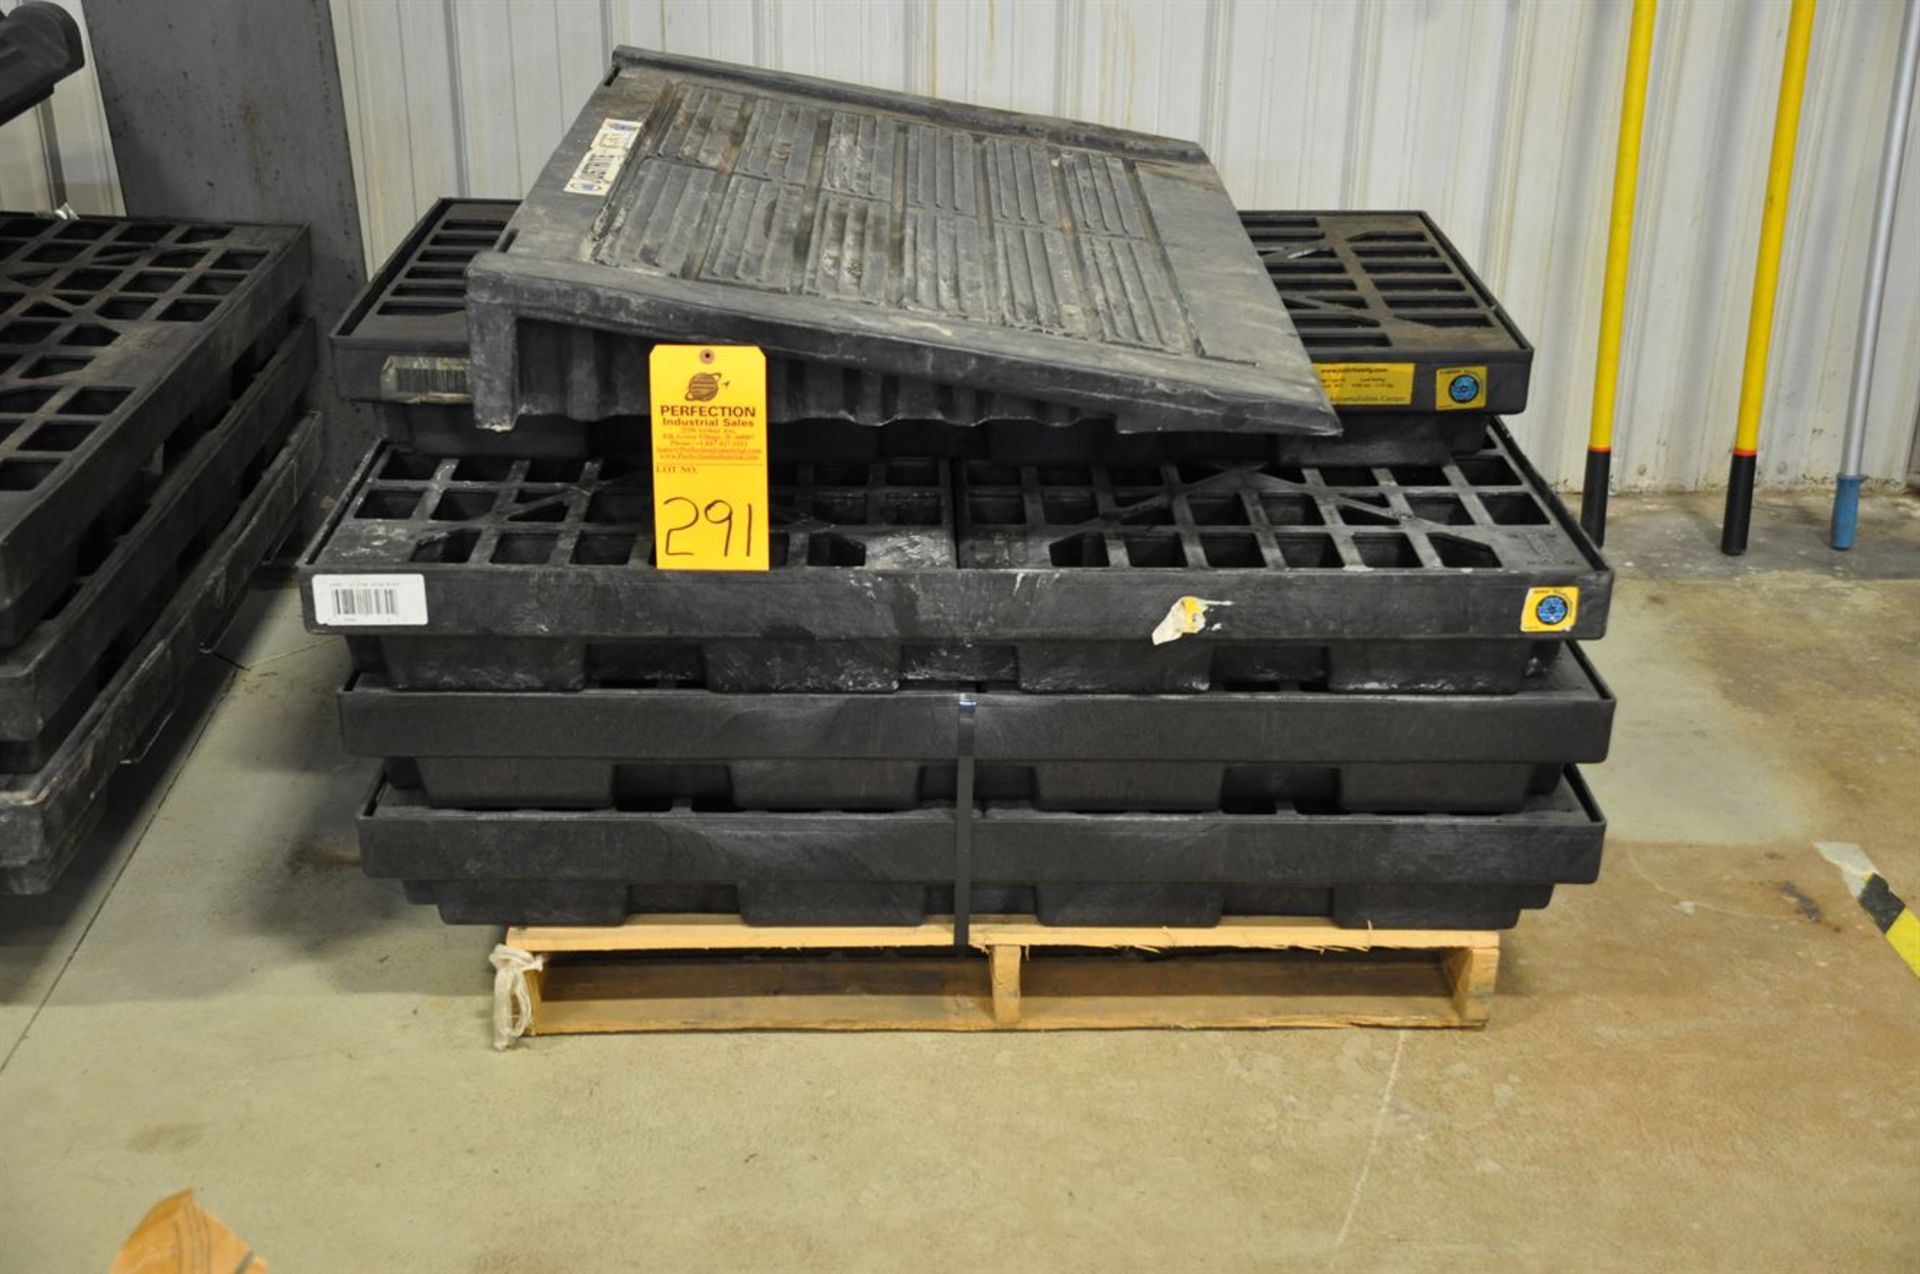 Spill Containment Pallets, (3) for 4 drums; (1) for 2 drums